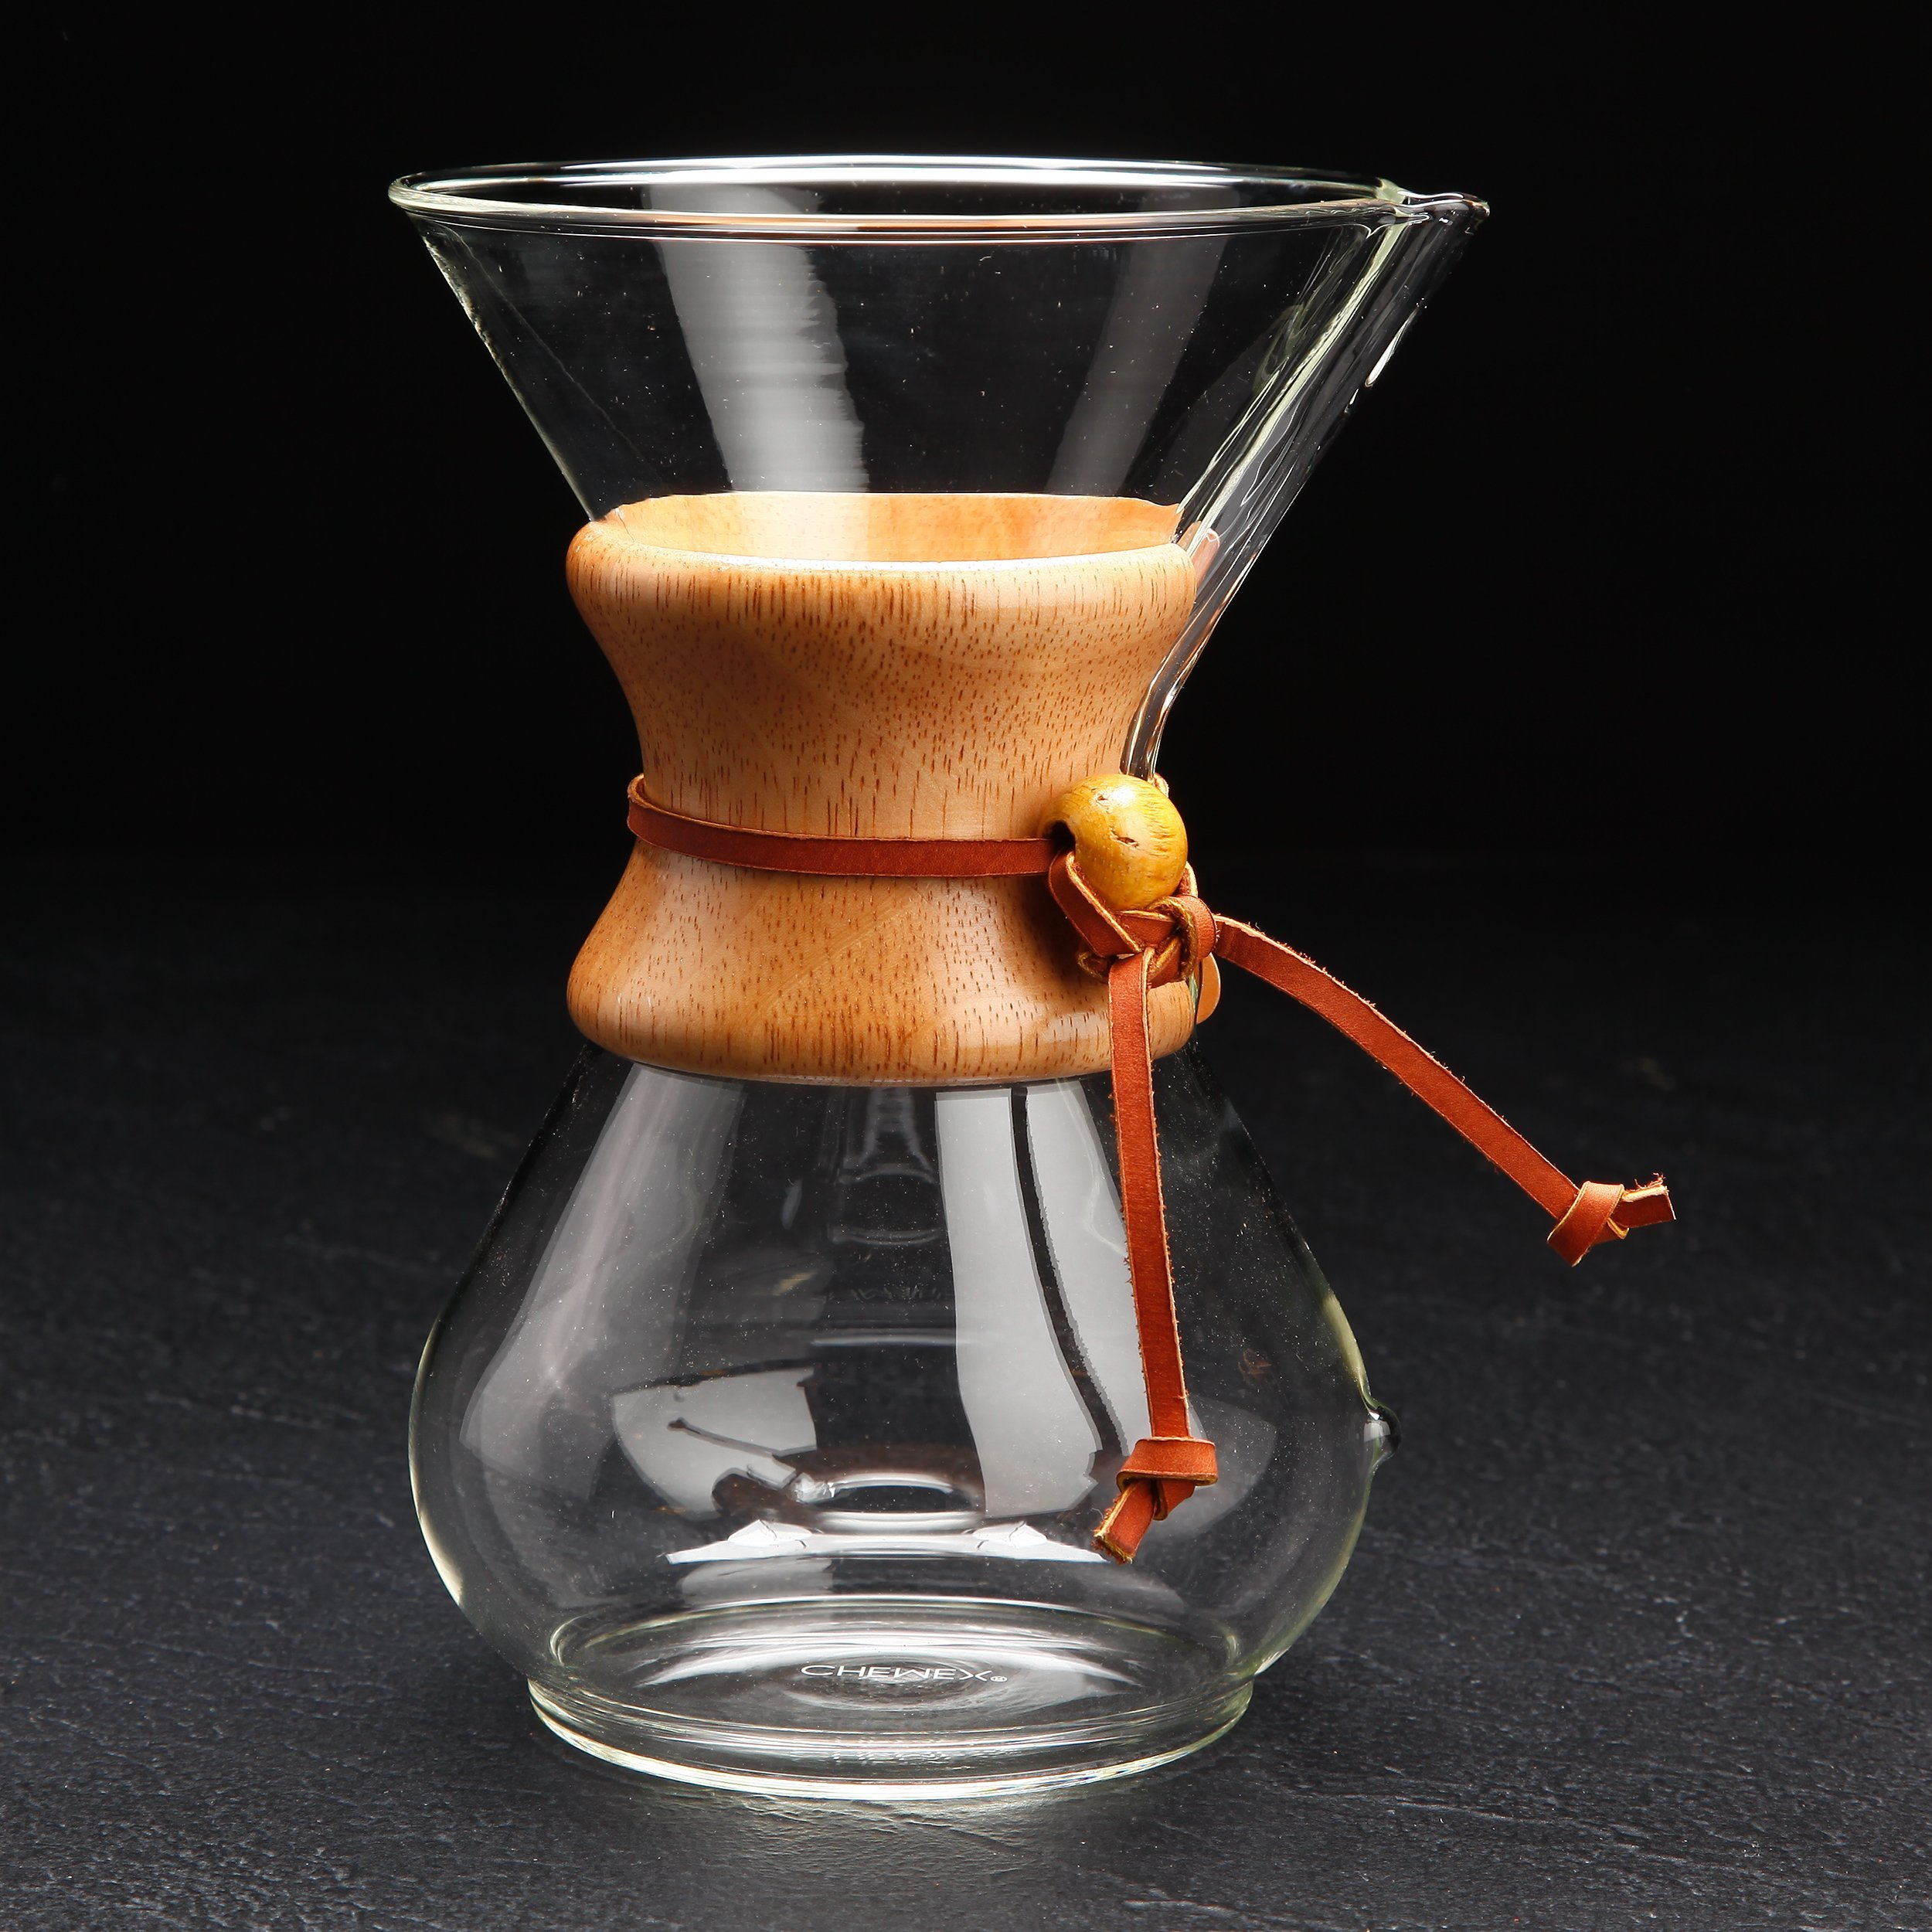 Pour Over Coffee Maker   Classic Hand Drip Brewer for Paper Filter   Hand Crafted Strong Borosilicate Glass with Lid, Easy Clean and Better Coffee by LePrem (Image #7)